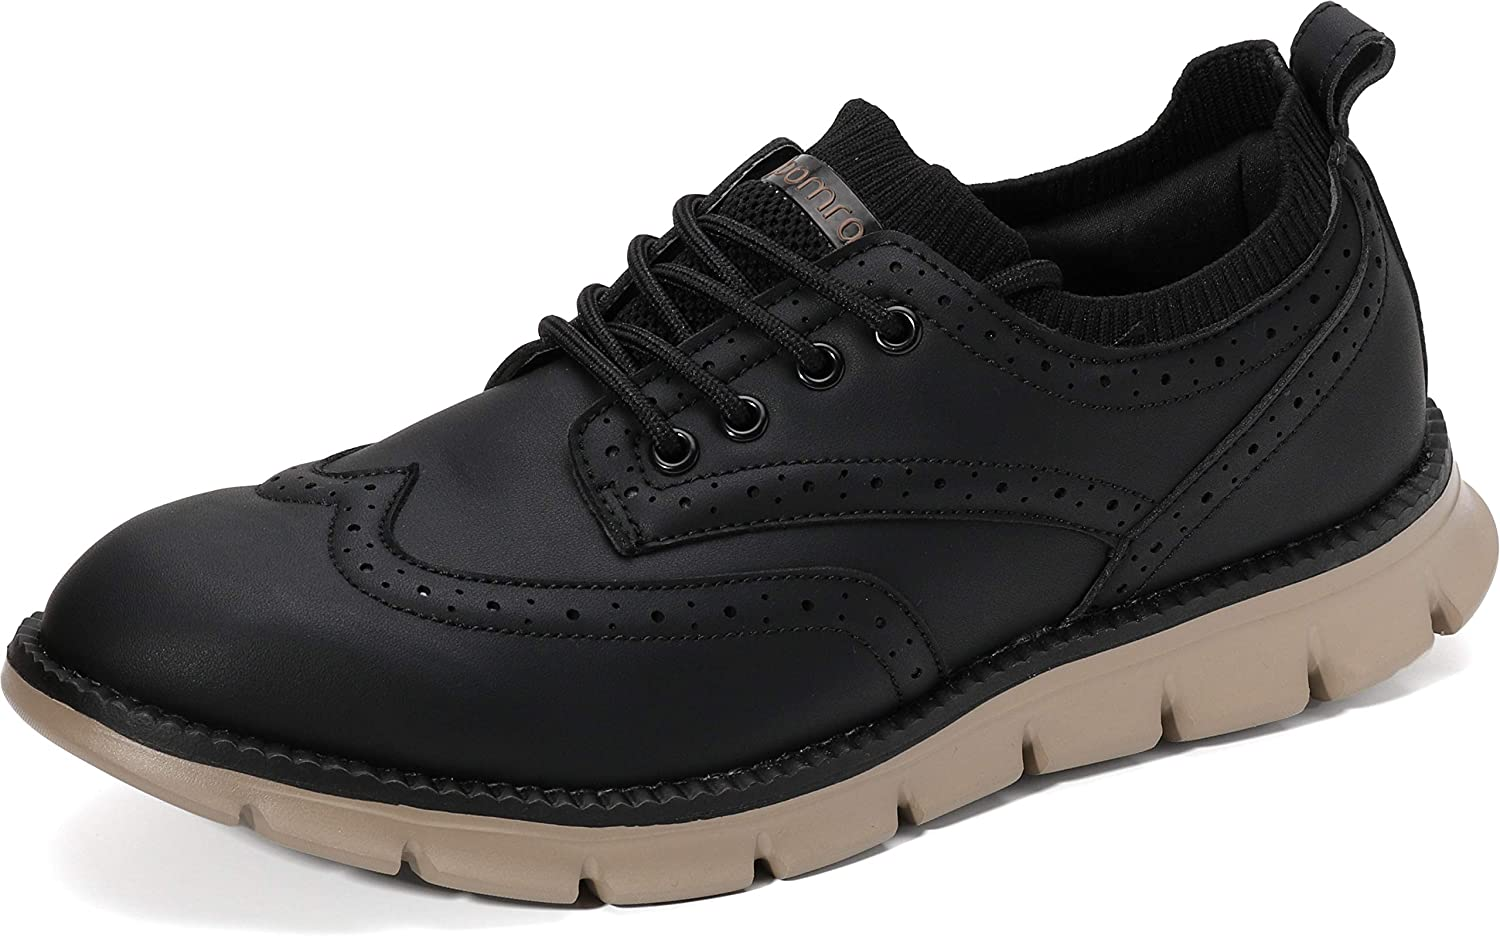 JOOMRA Men's Knit/Leather Wingtip Oxford Dress Shoes